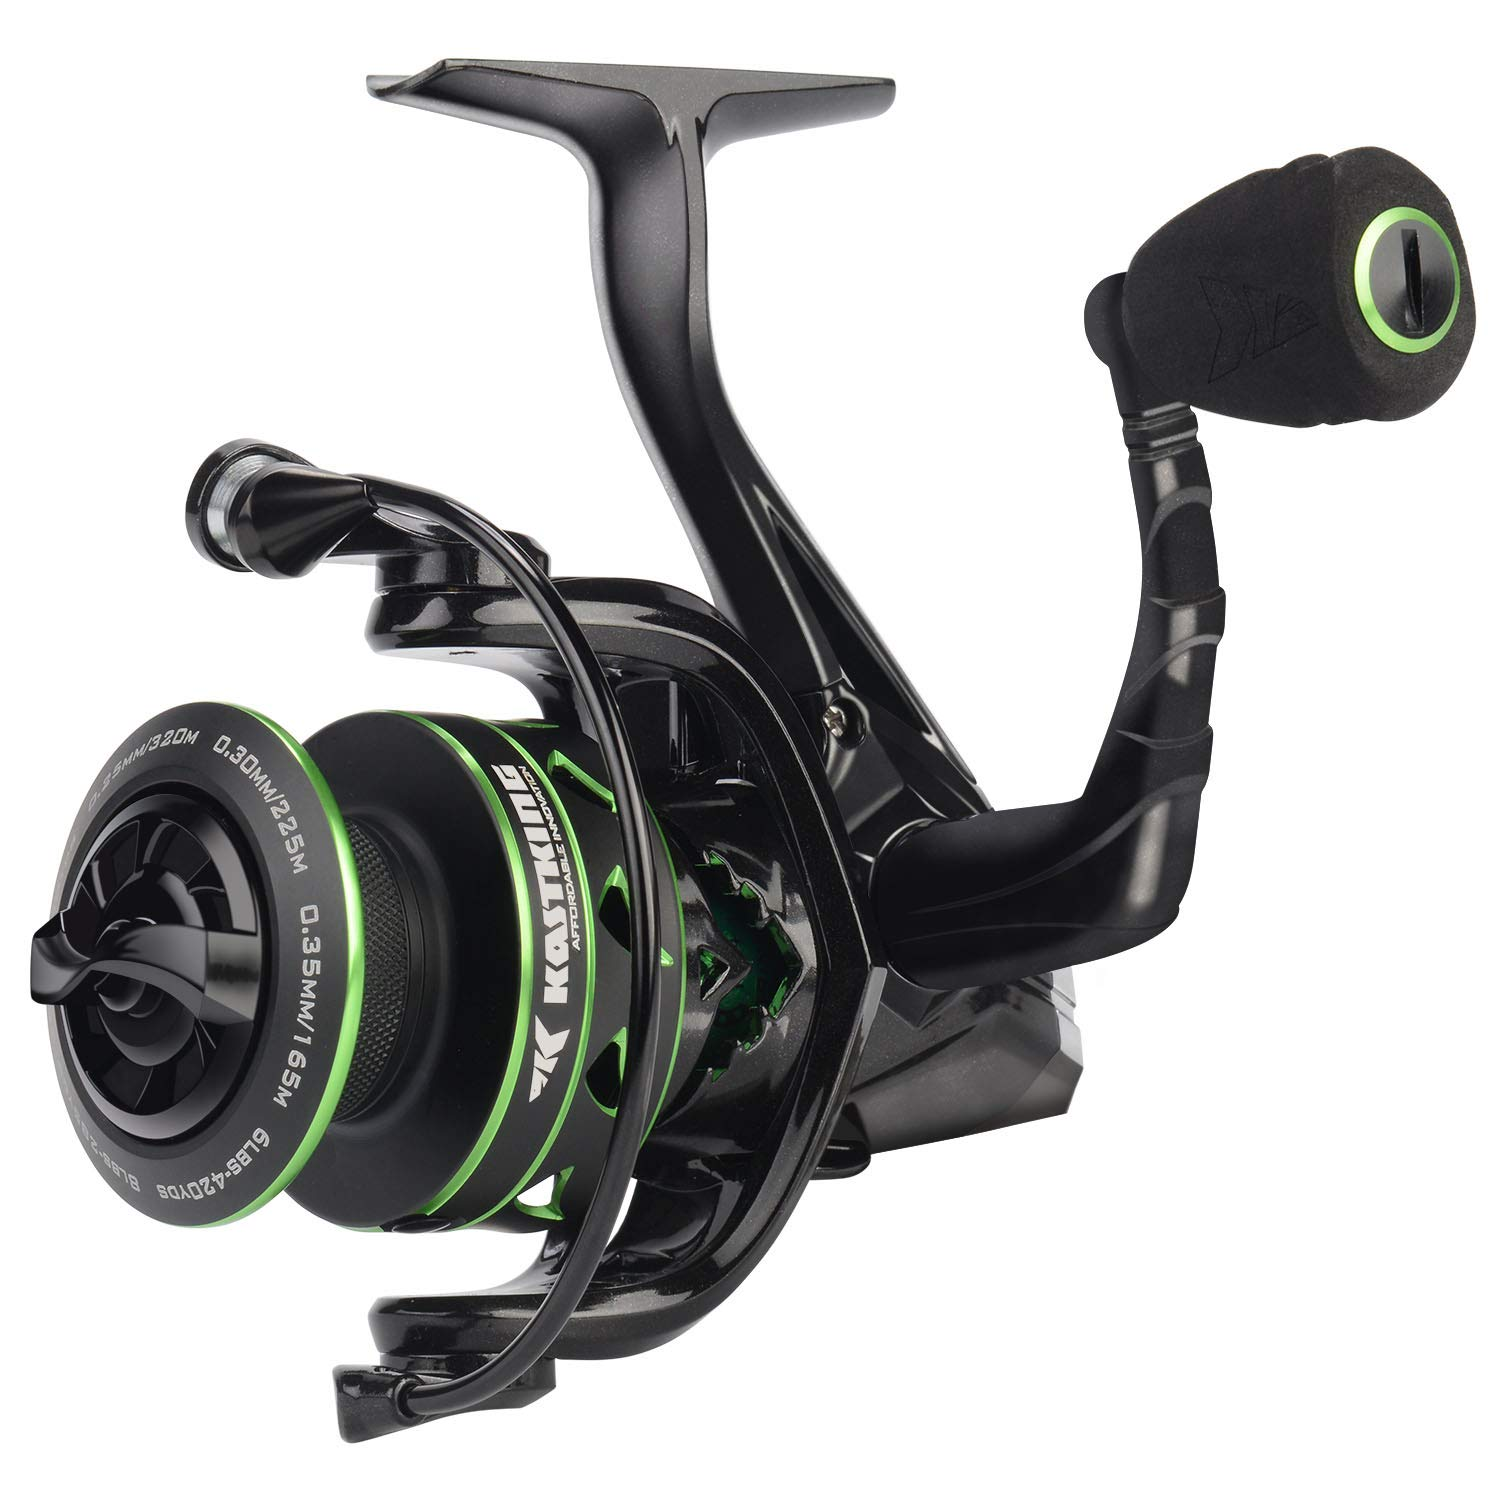 KastKing Valiant Eagle Spinning Reel - 6.2:1 High-Speed Gear Ratio, Freshwater and Saltwater Fishing Reel, Faster Line Retrieve, Braid Ready Spool